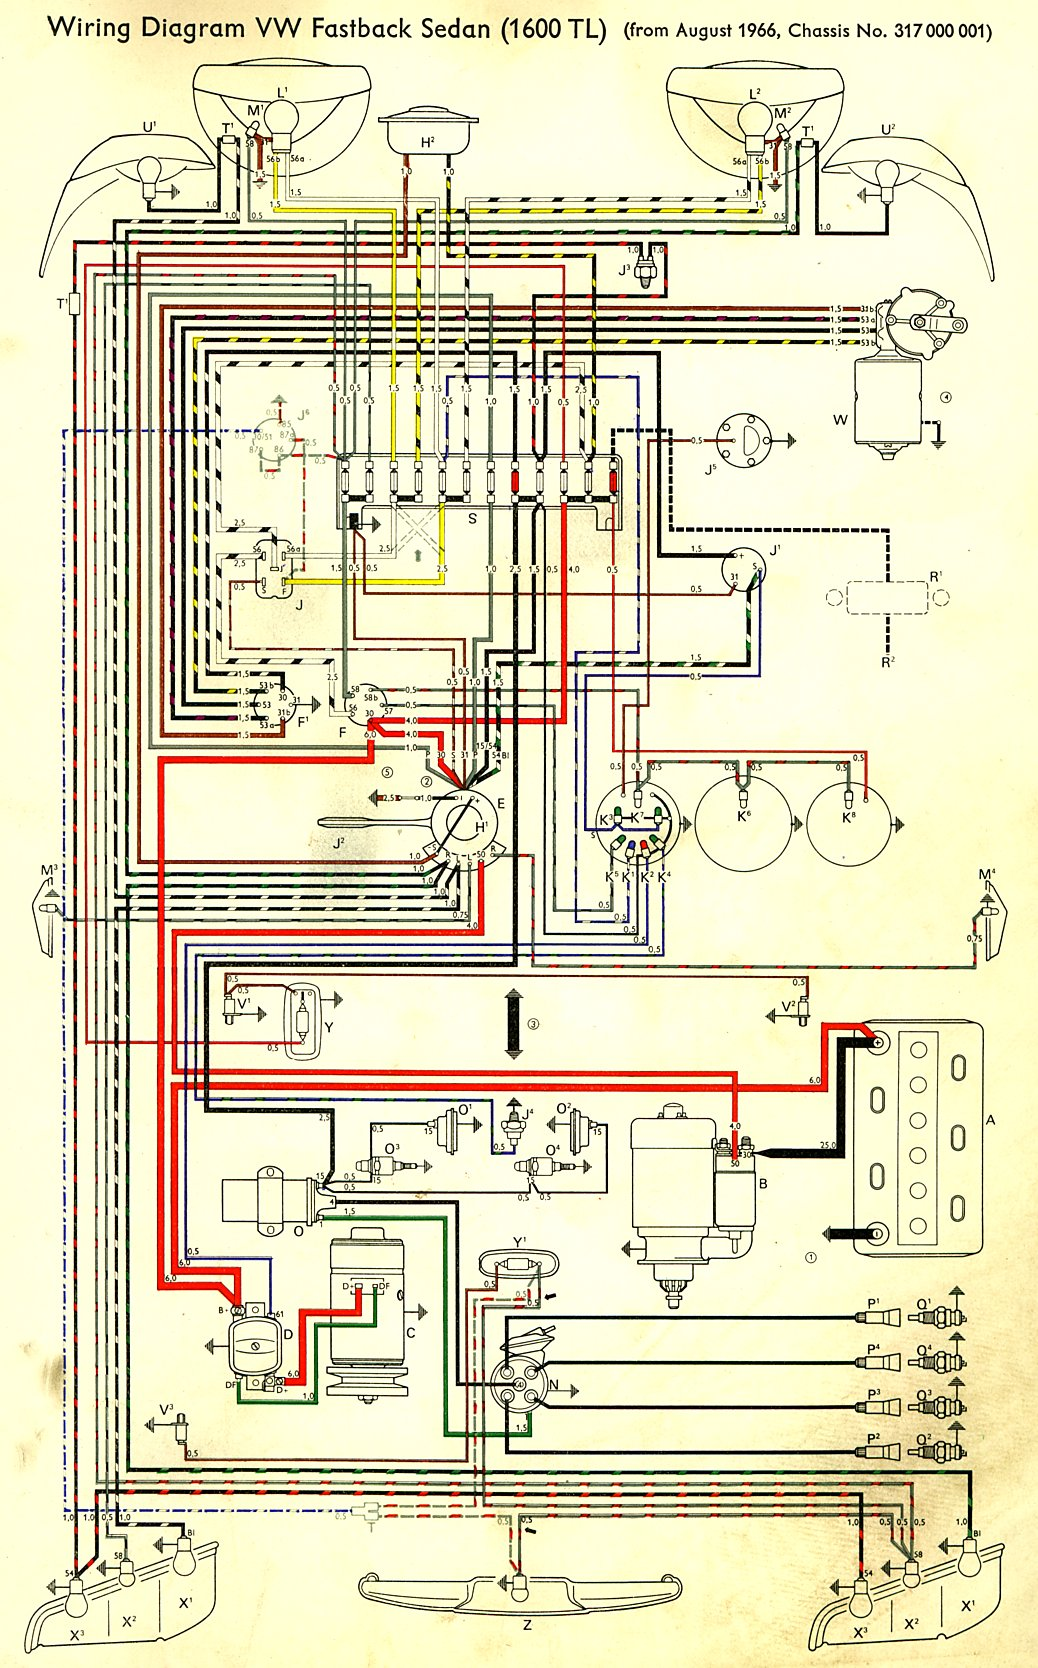 Type 3 Wiring Diagram Change Your Idea With Design Volkswagen Electric 2000 Thesamba Com Diagrams Rh 1971 Vw